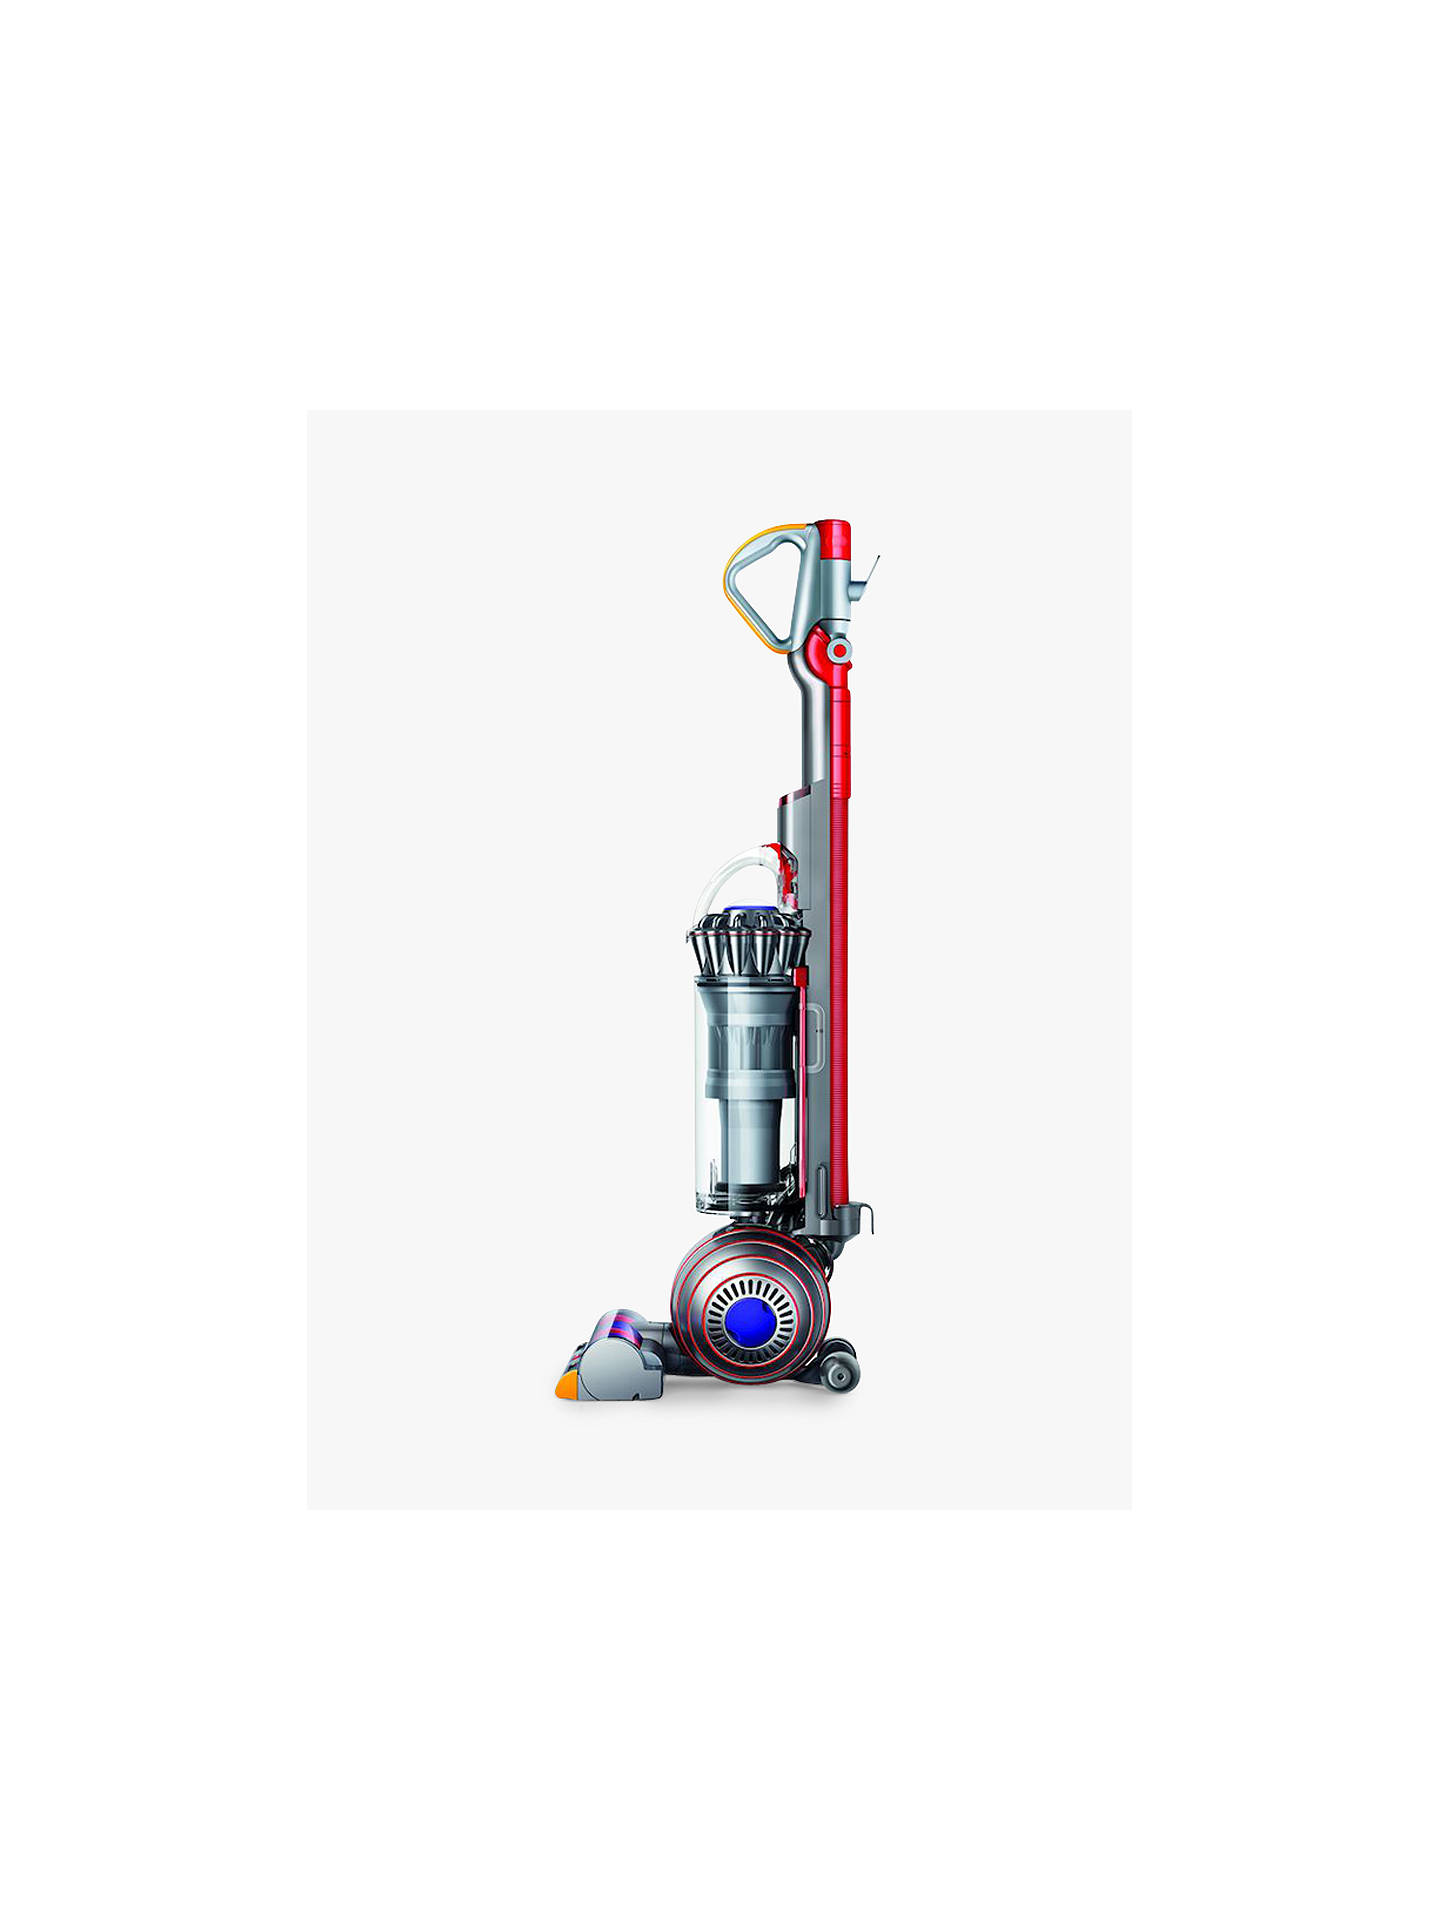 BuyDyson Ball Animal 2 Upright Vacuum Cleaner Online at johnlewis.com